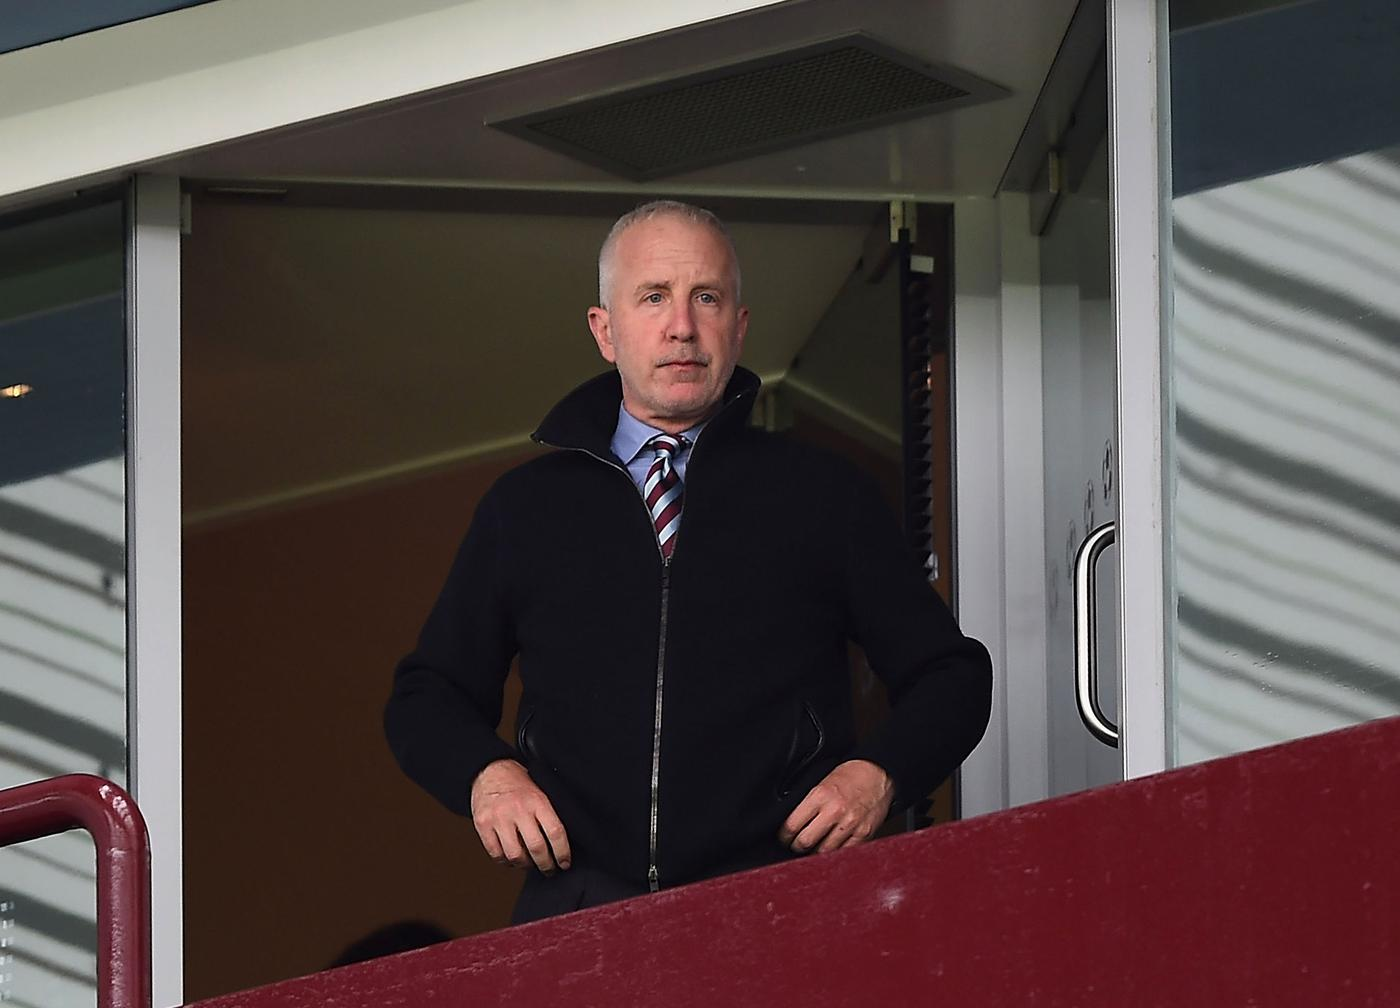 Randy Lerner will be doing the right by Aston Villa if he quits